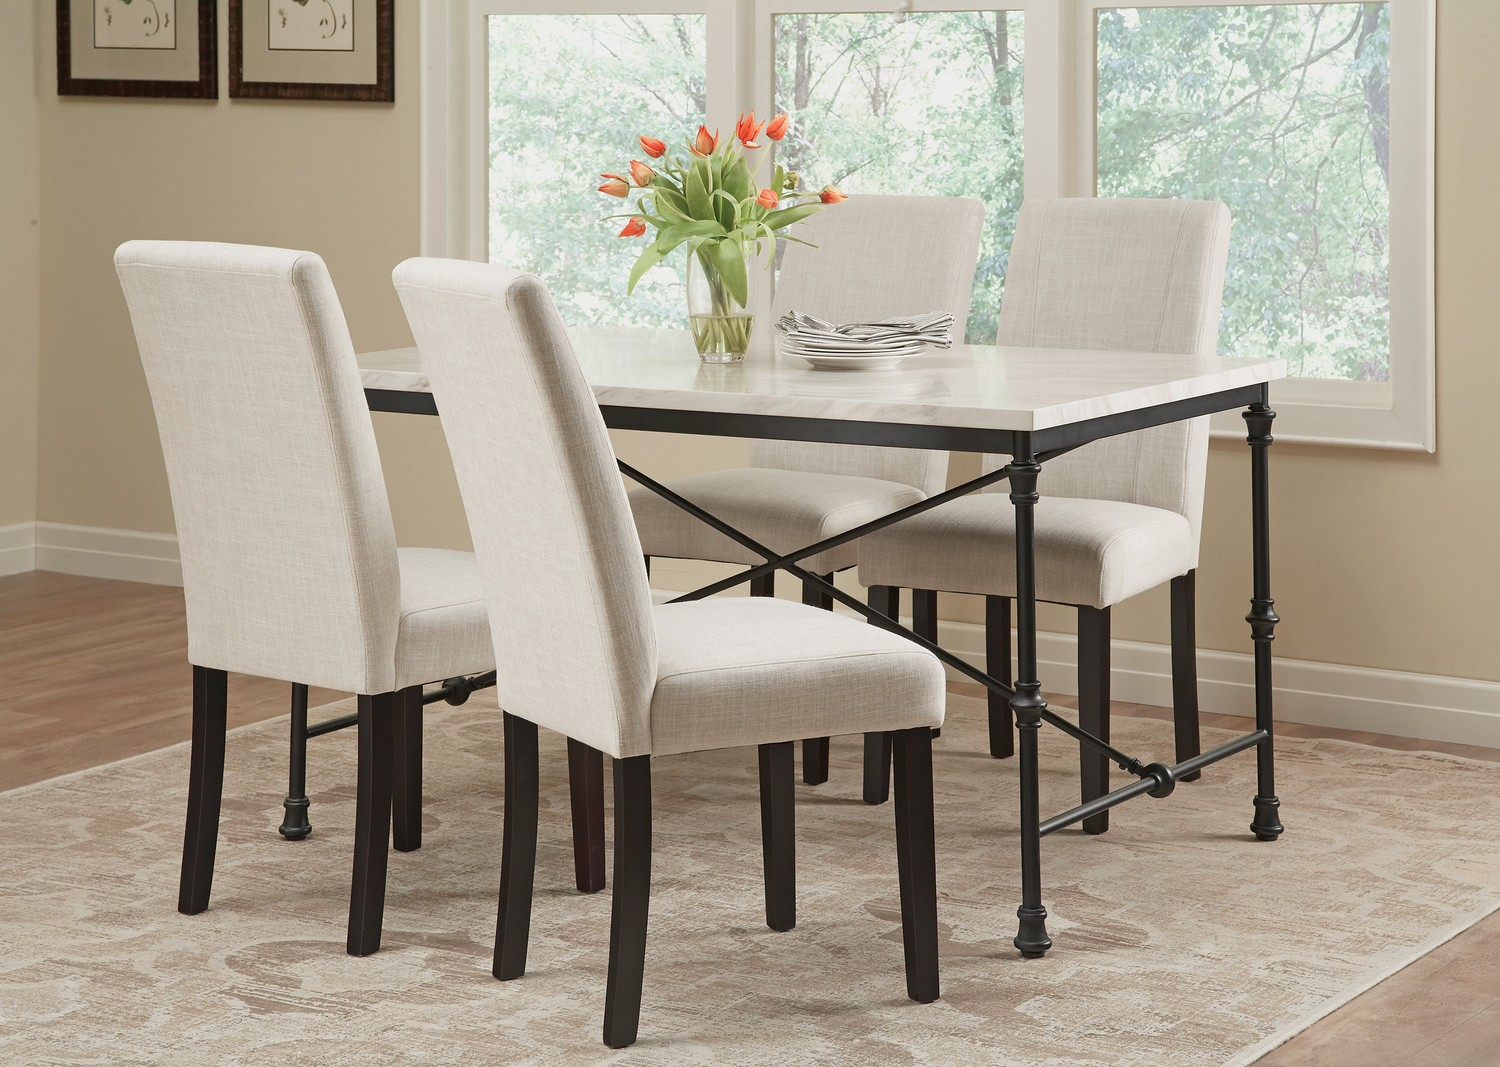 Coaster Nagel Dining Table - Dark Rustic Metal/Faux Marble Top